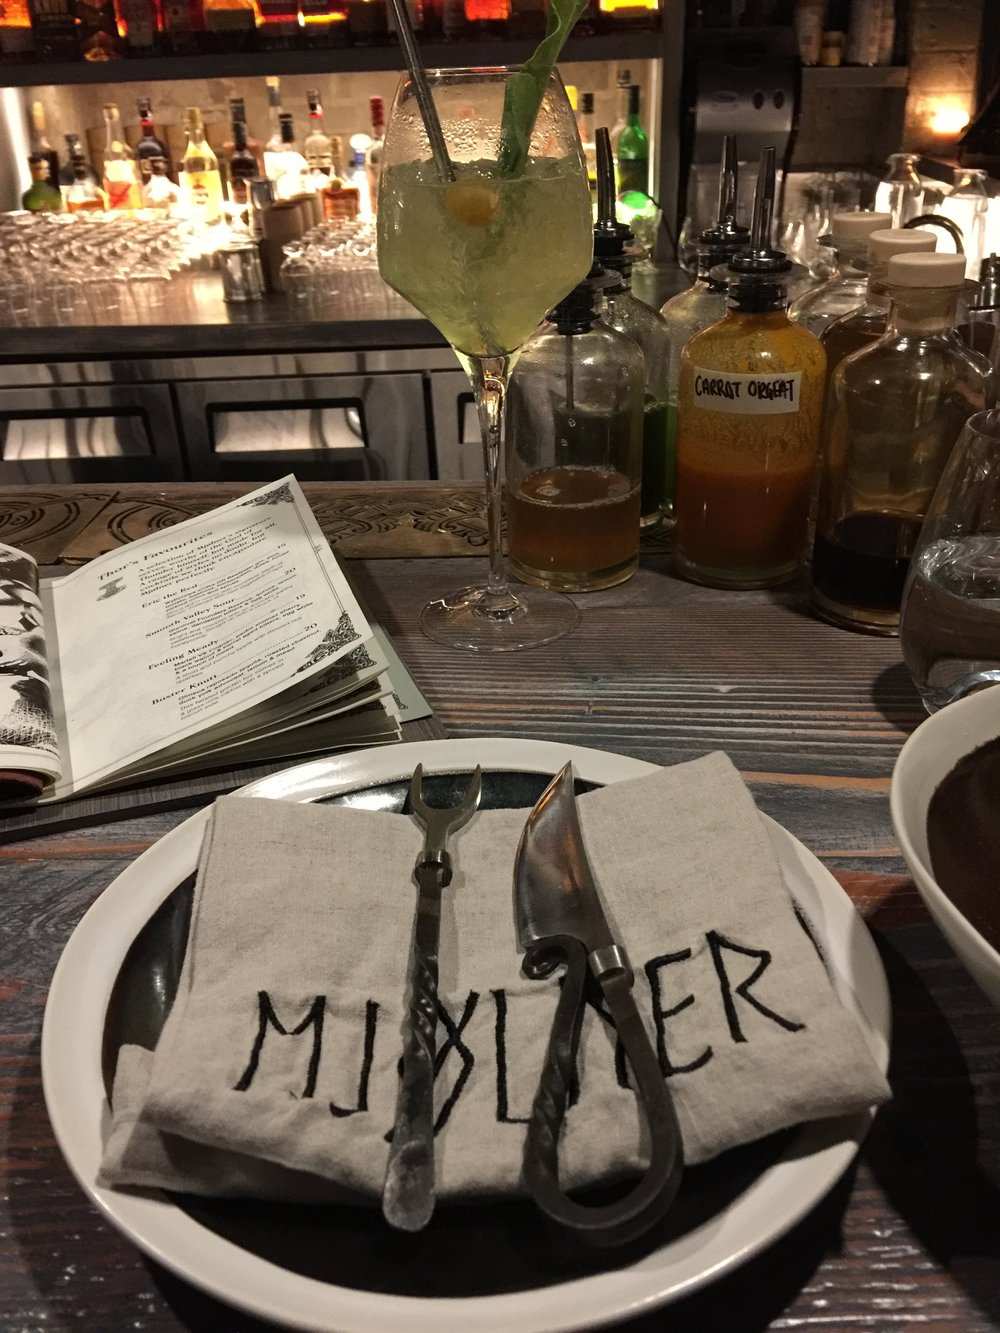 Pull up a seat and have a cocktail at Mjolner bar and restaurant